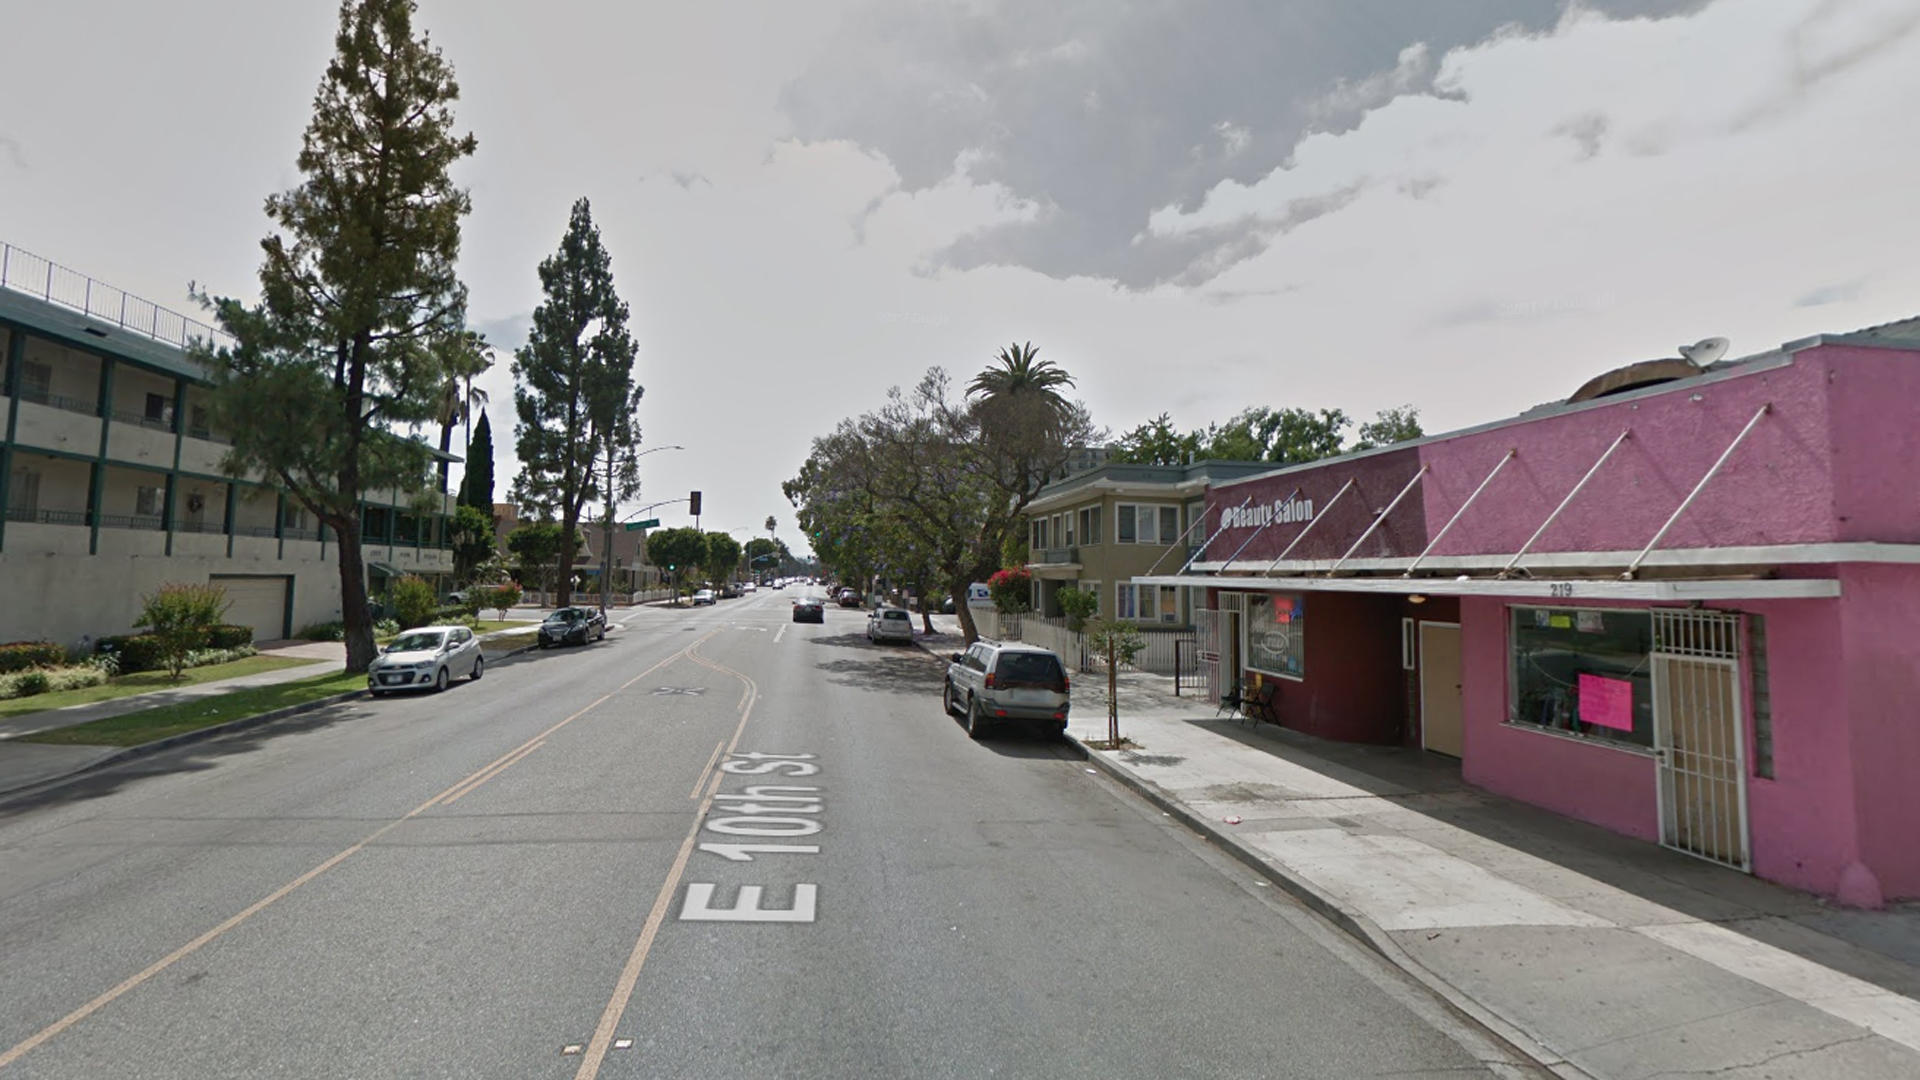 An area of the 200 block of East 10th Street in Long Beach appears in an image from Google Maps.